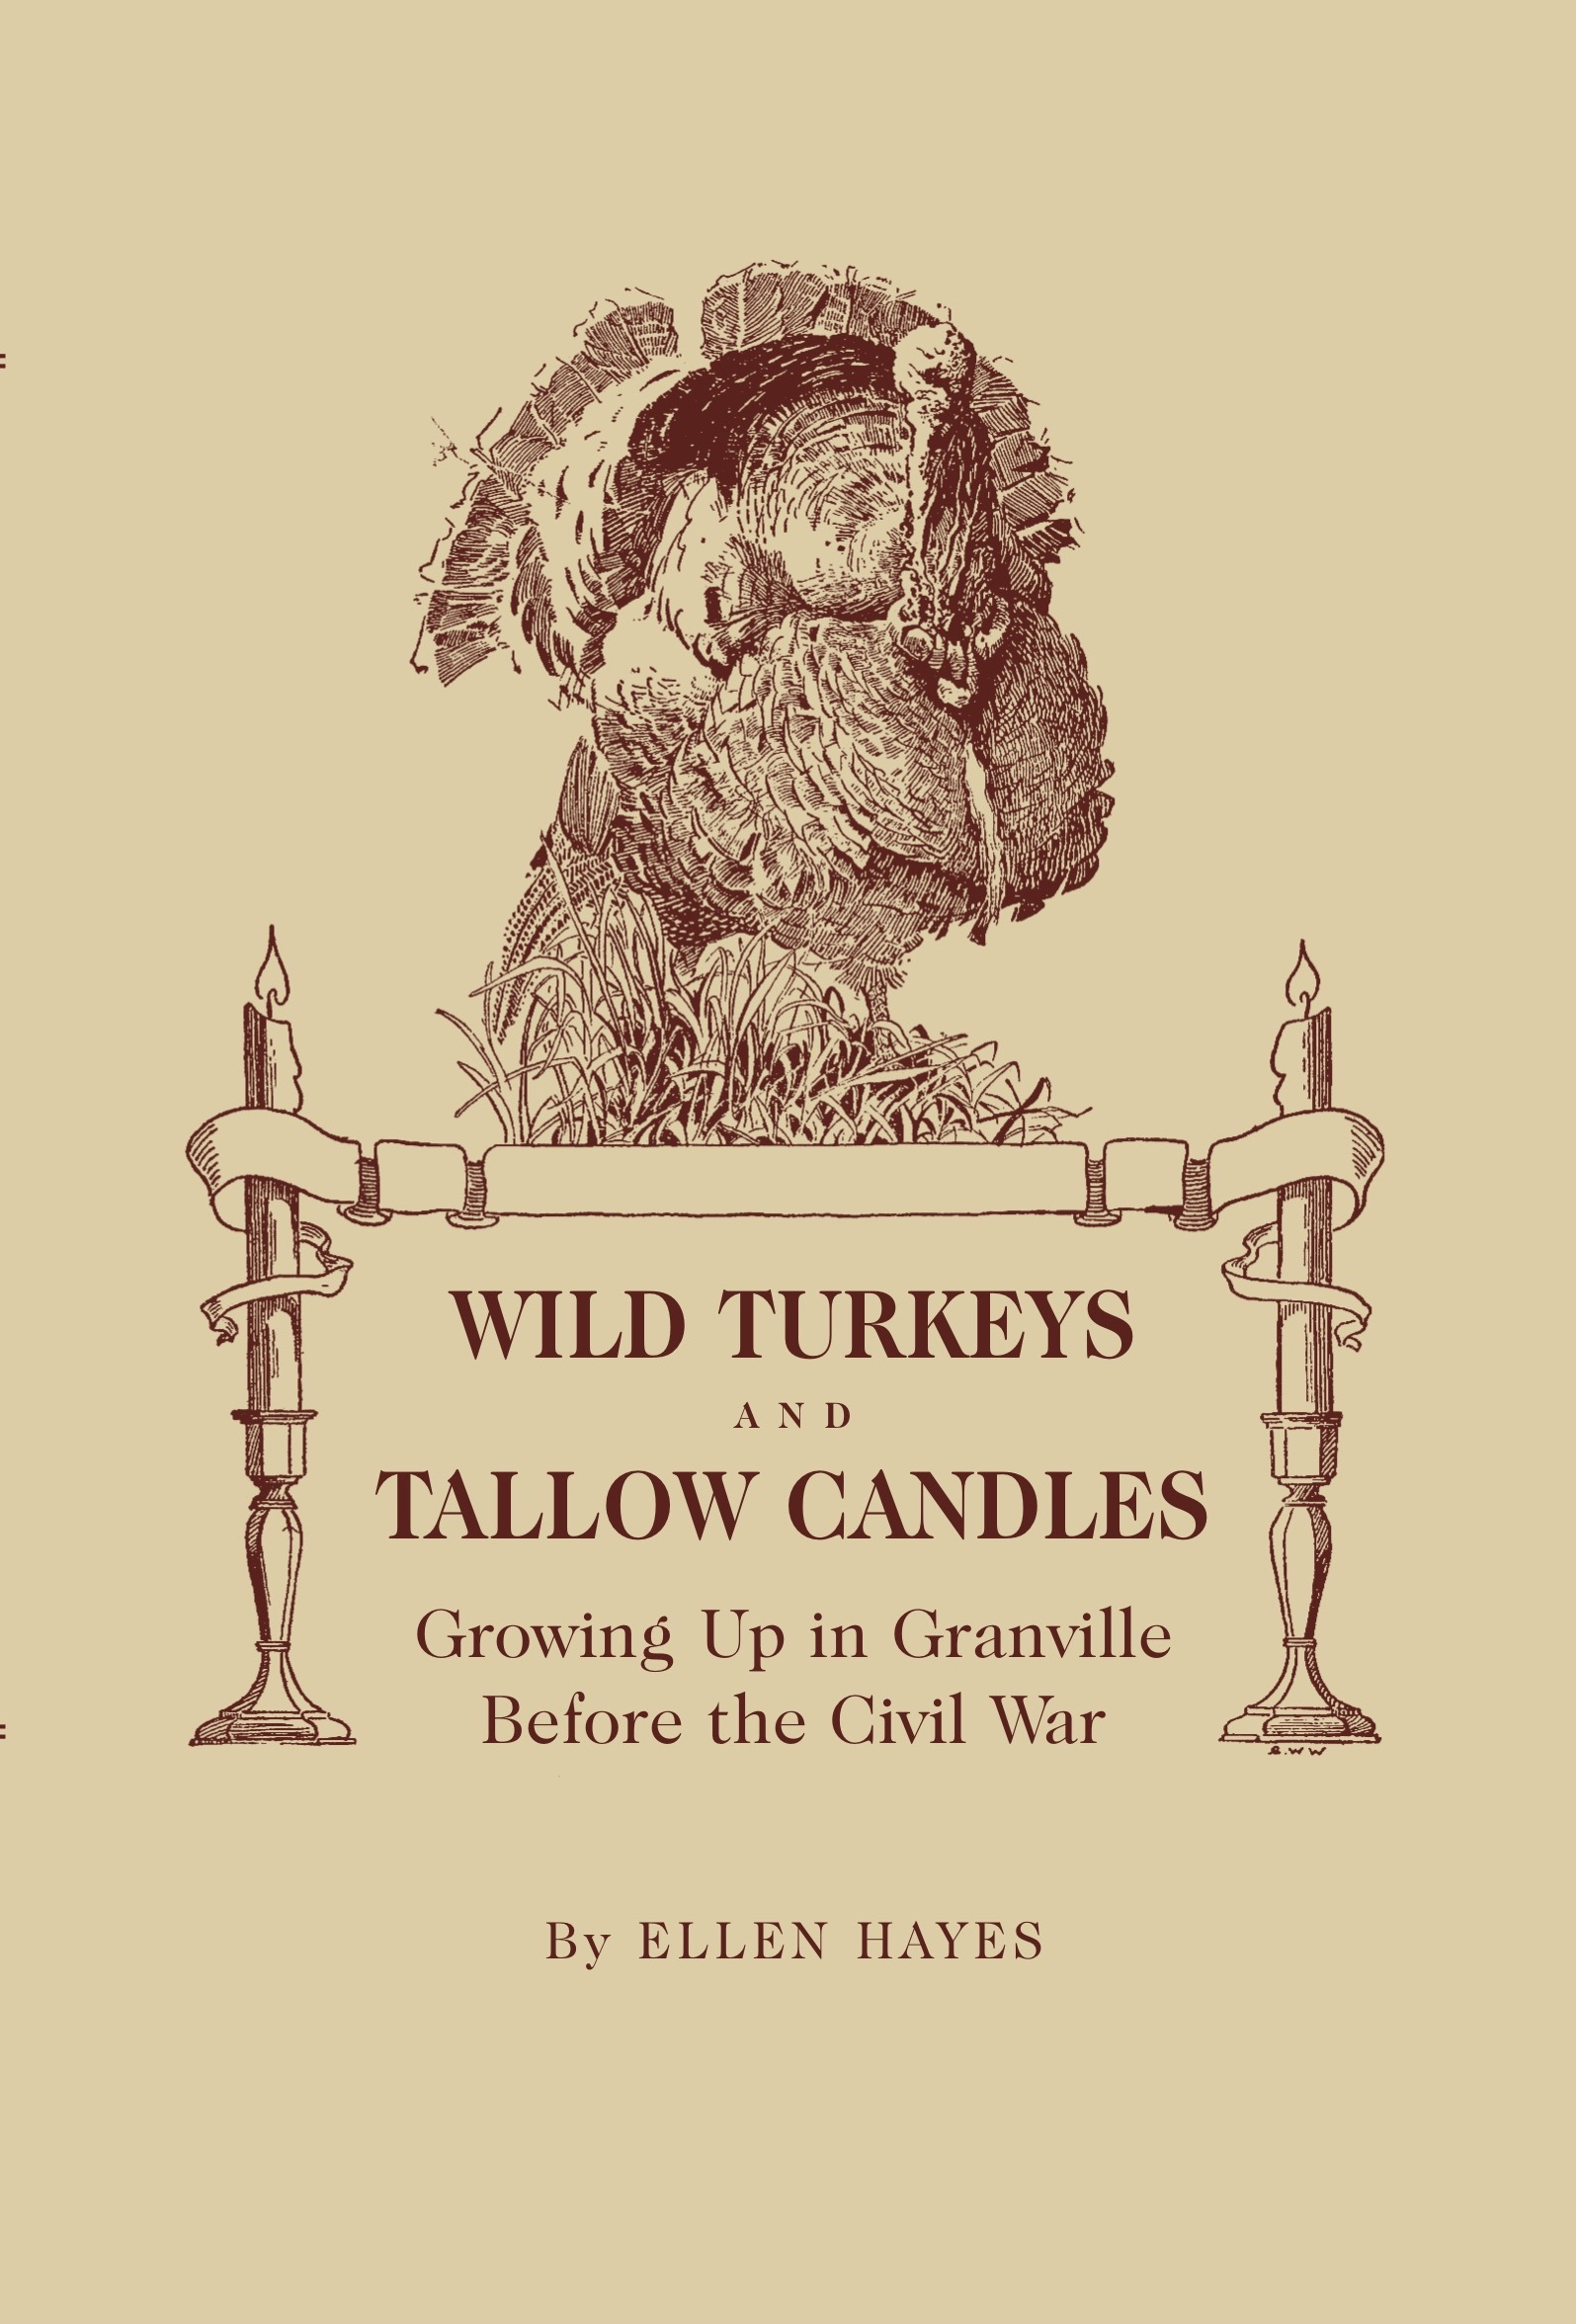 WildTurkeys_COVER.jpg